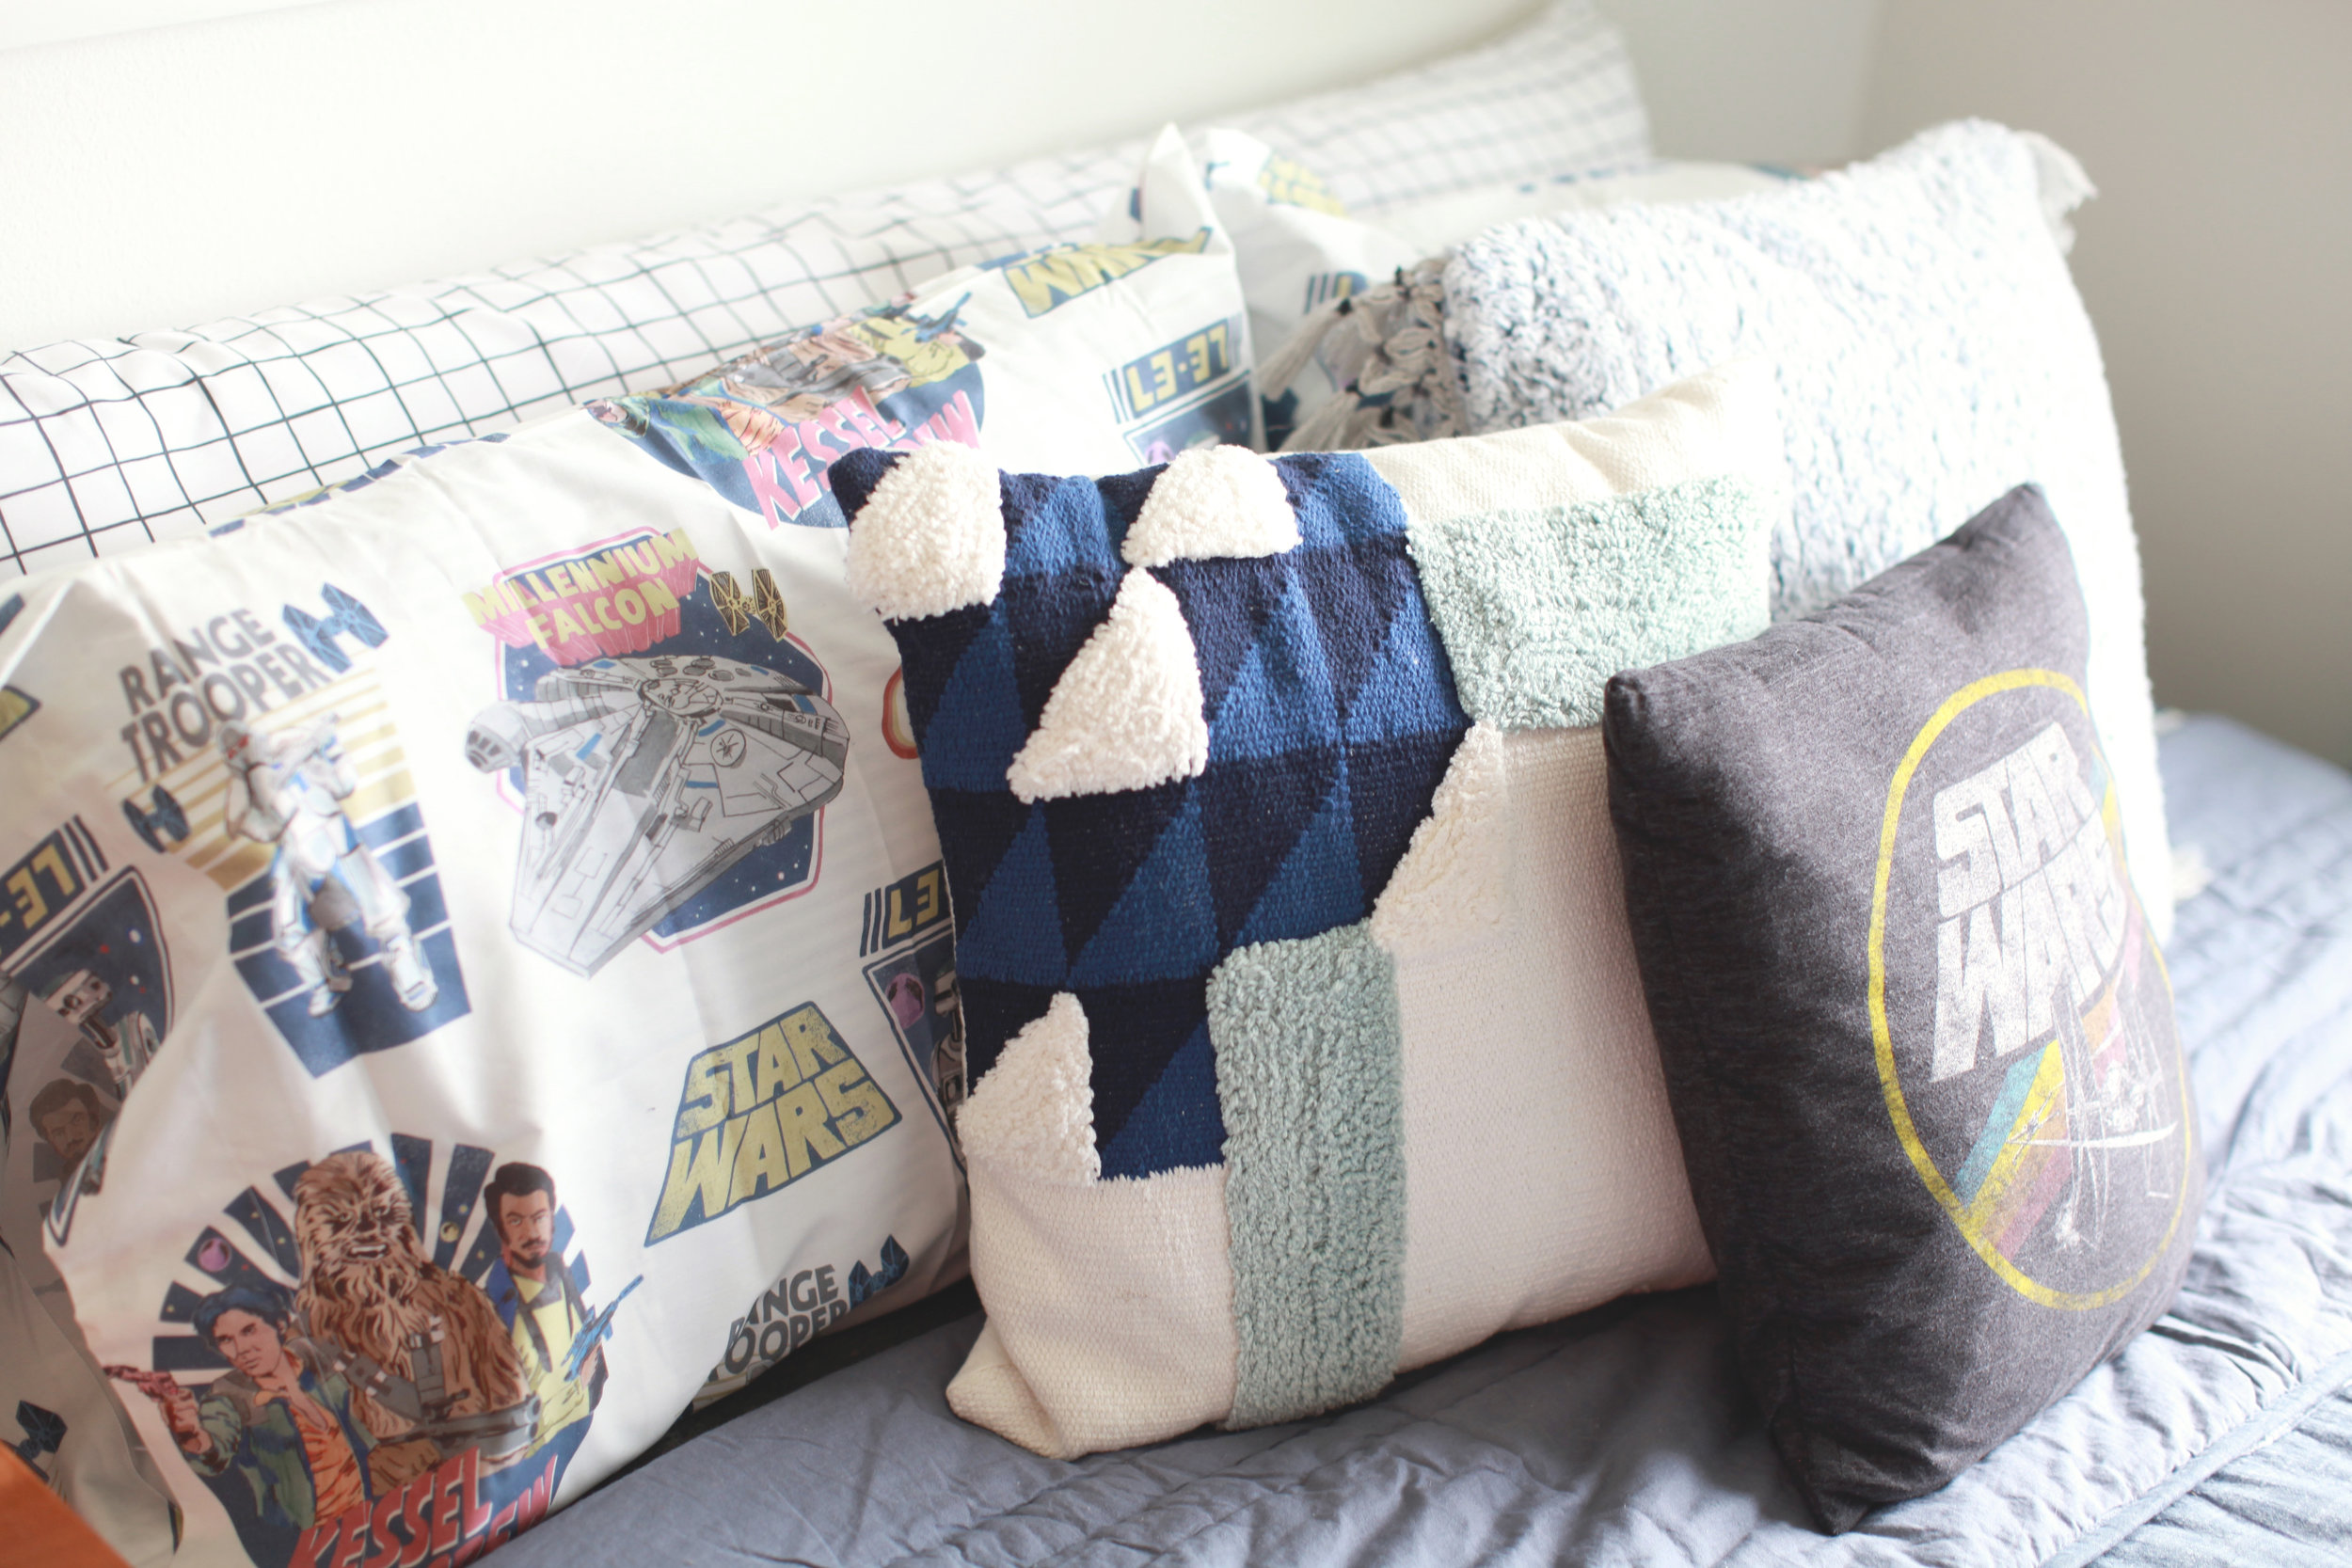 See - pillows are fun and amazing and I love the mix of patterns and shapes. Keeping the bedspread simple and classic and having these as pieces we can change out over time is more economical as well.